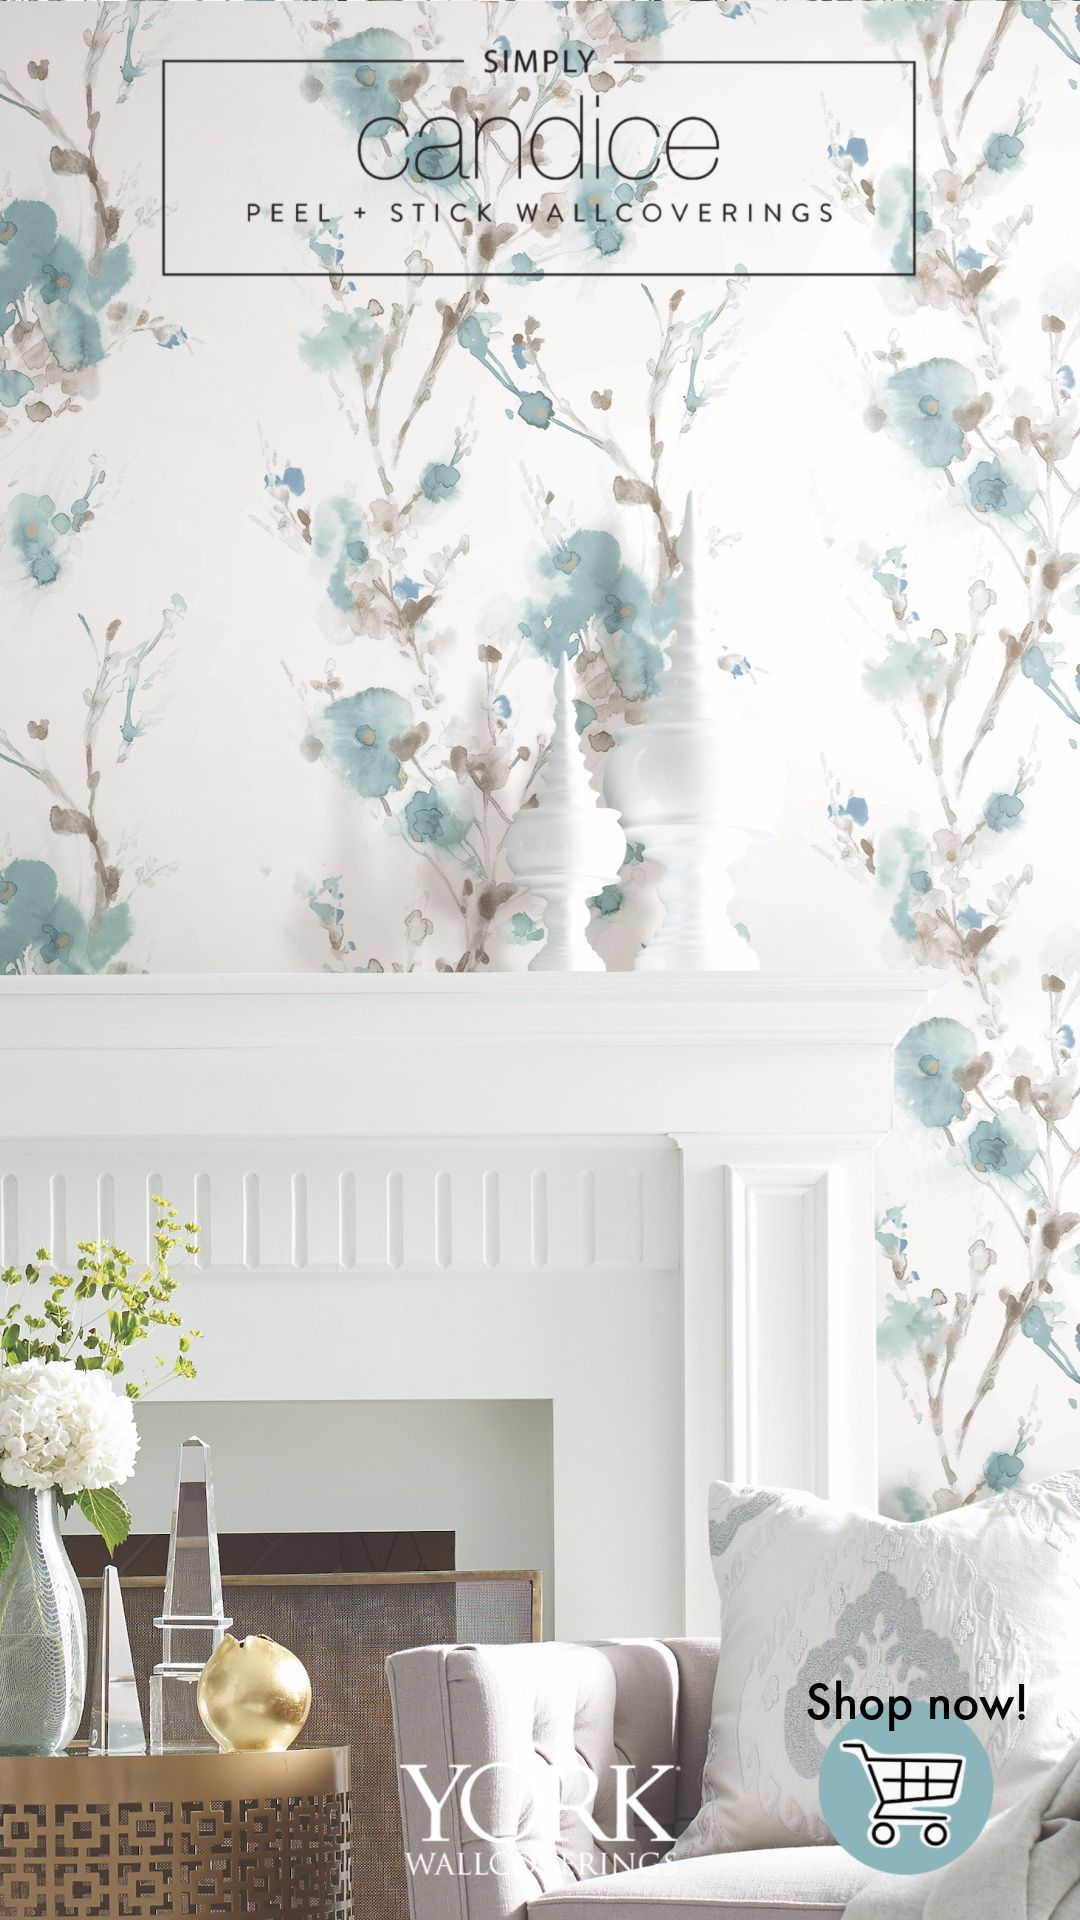 Charm Premium Peel And Stick Wallpaper Peel And Stick Wallpaper Room Visualizer Candice Olson Wallpaper